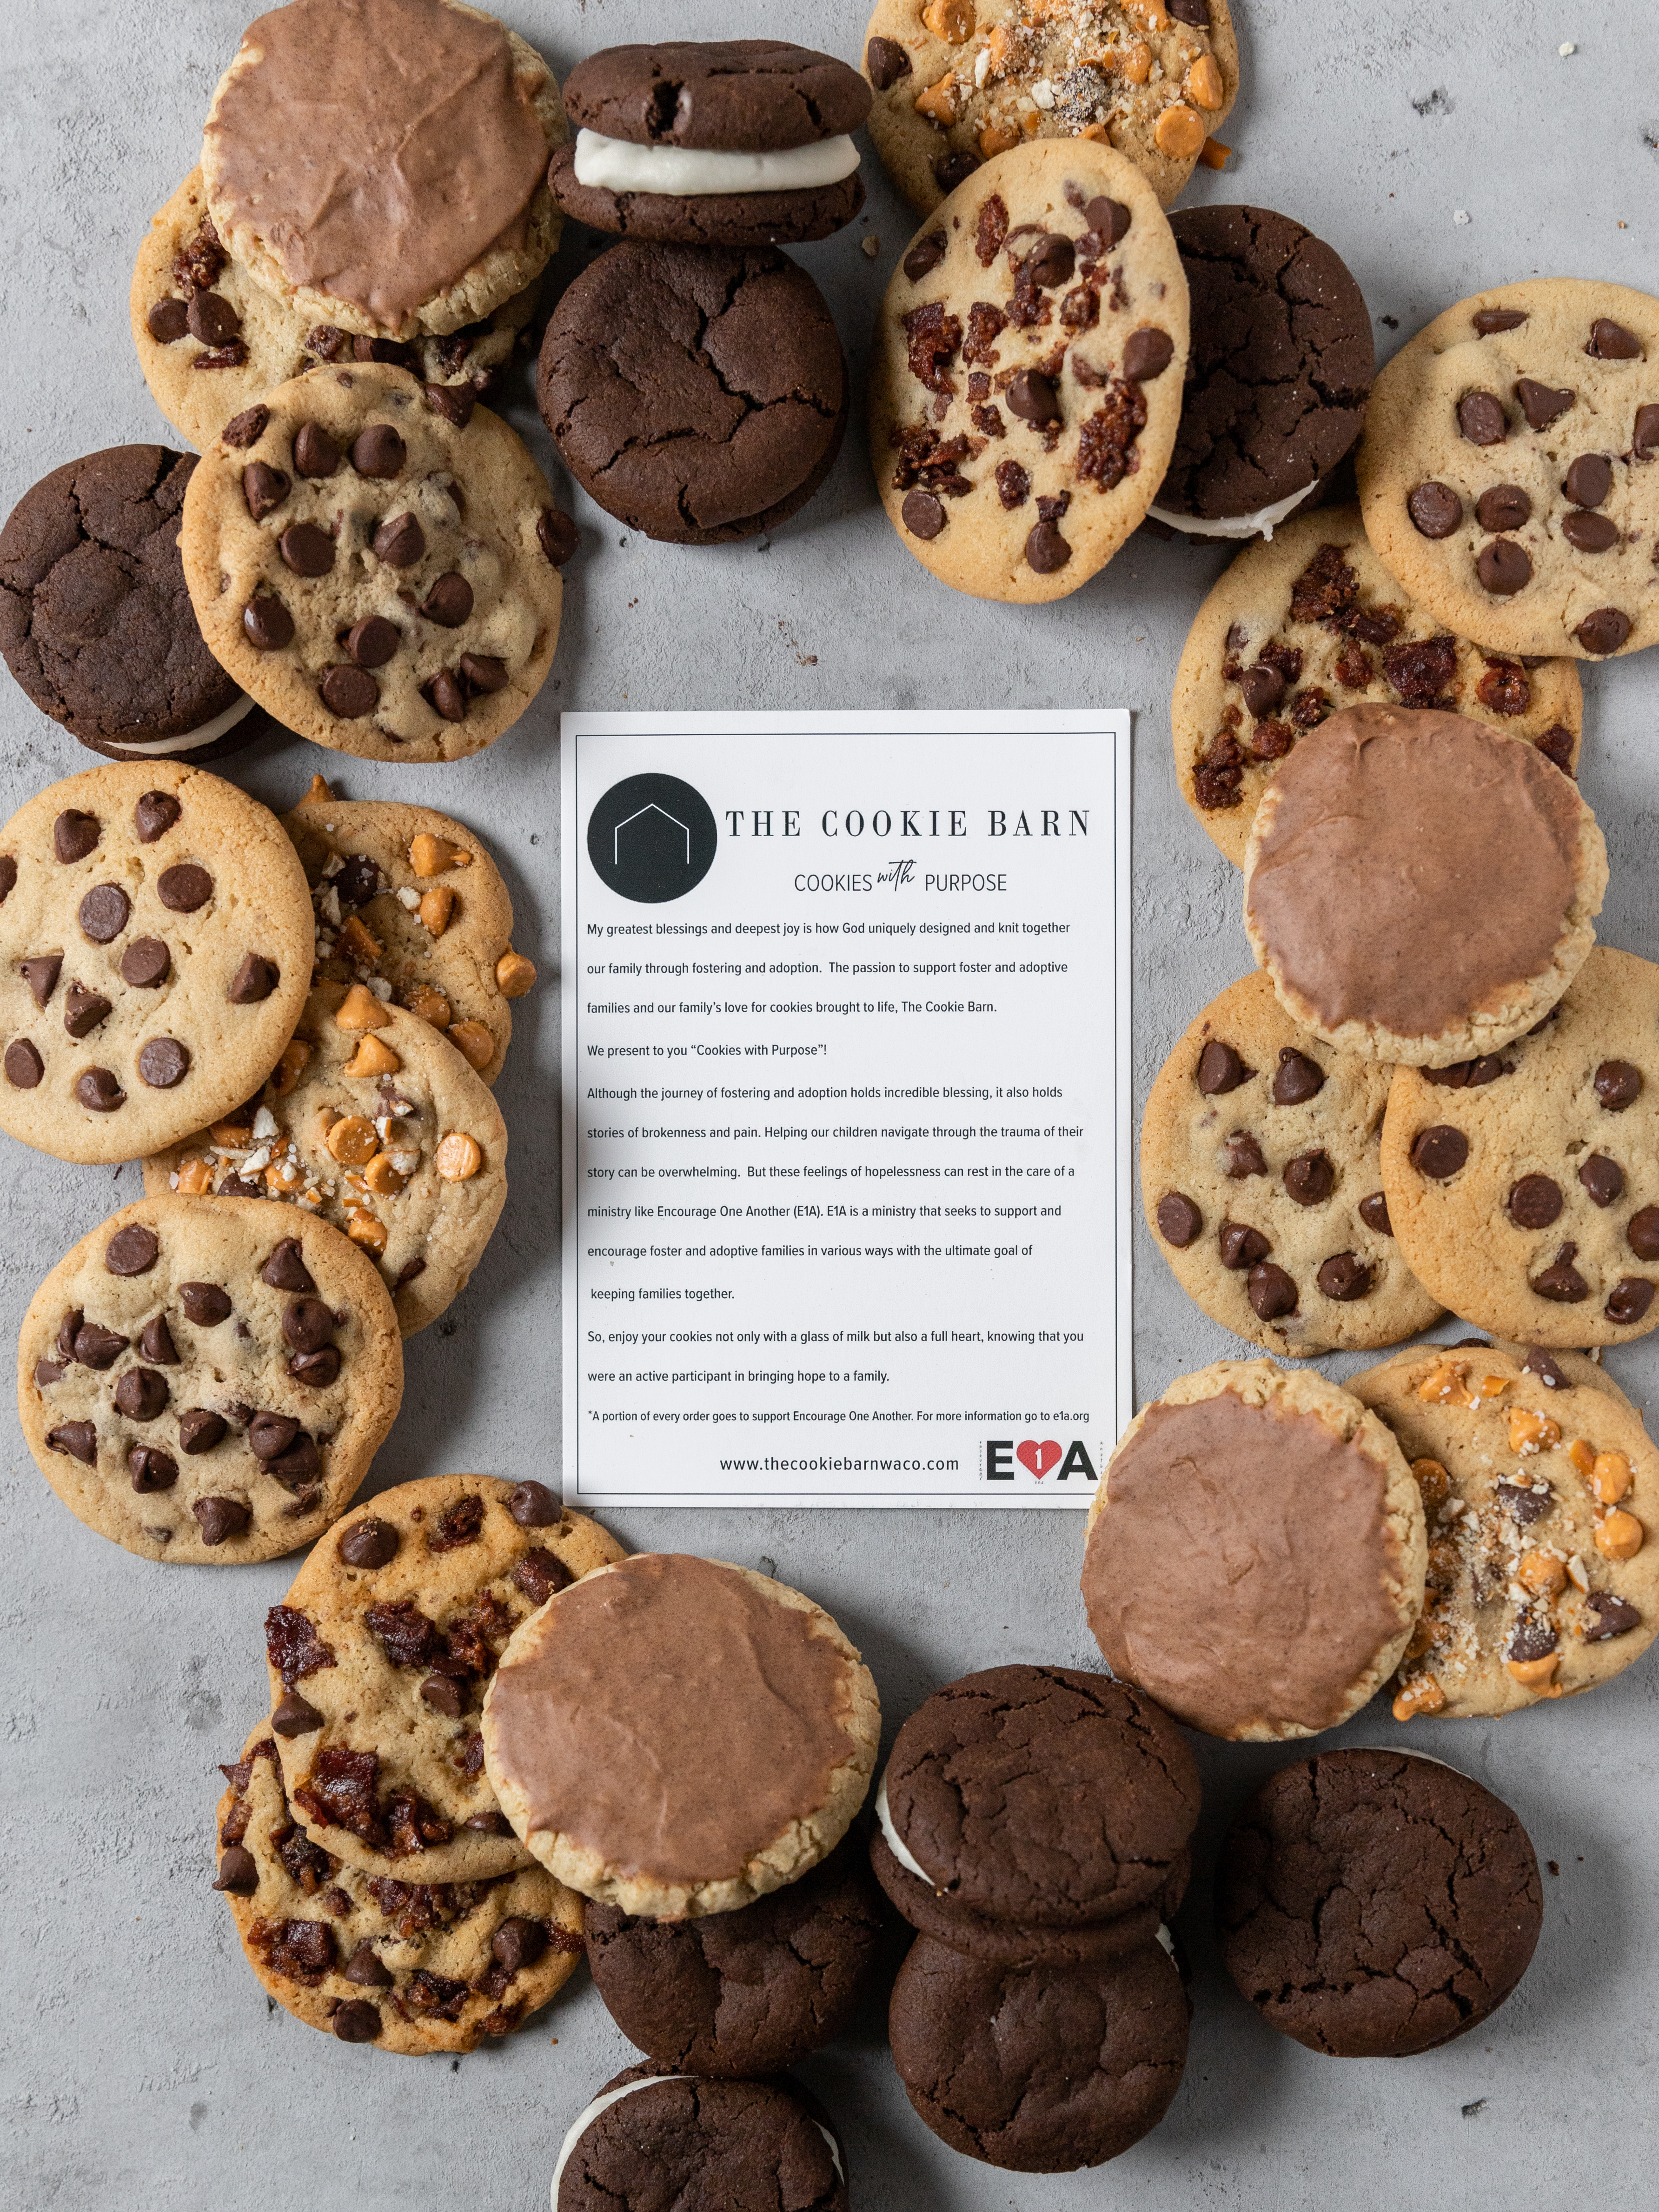 The Cookie Barn